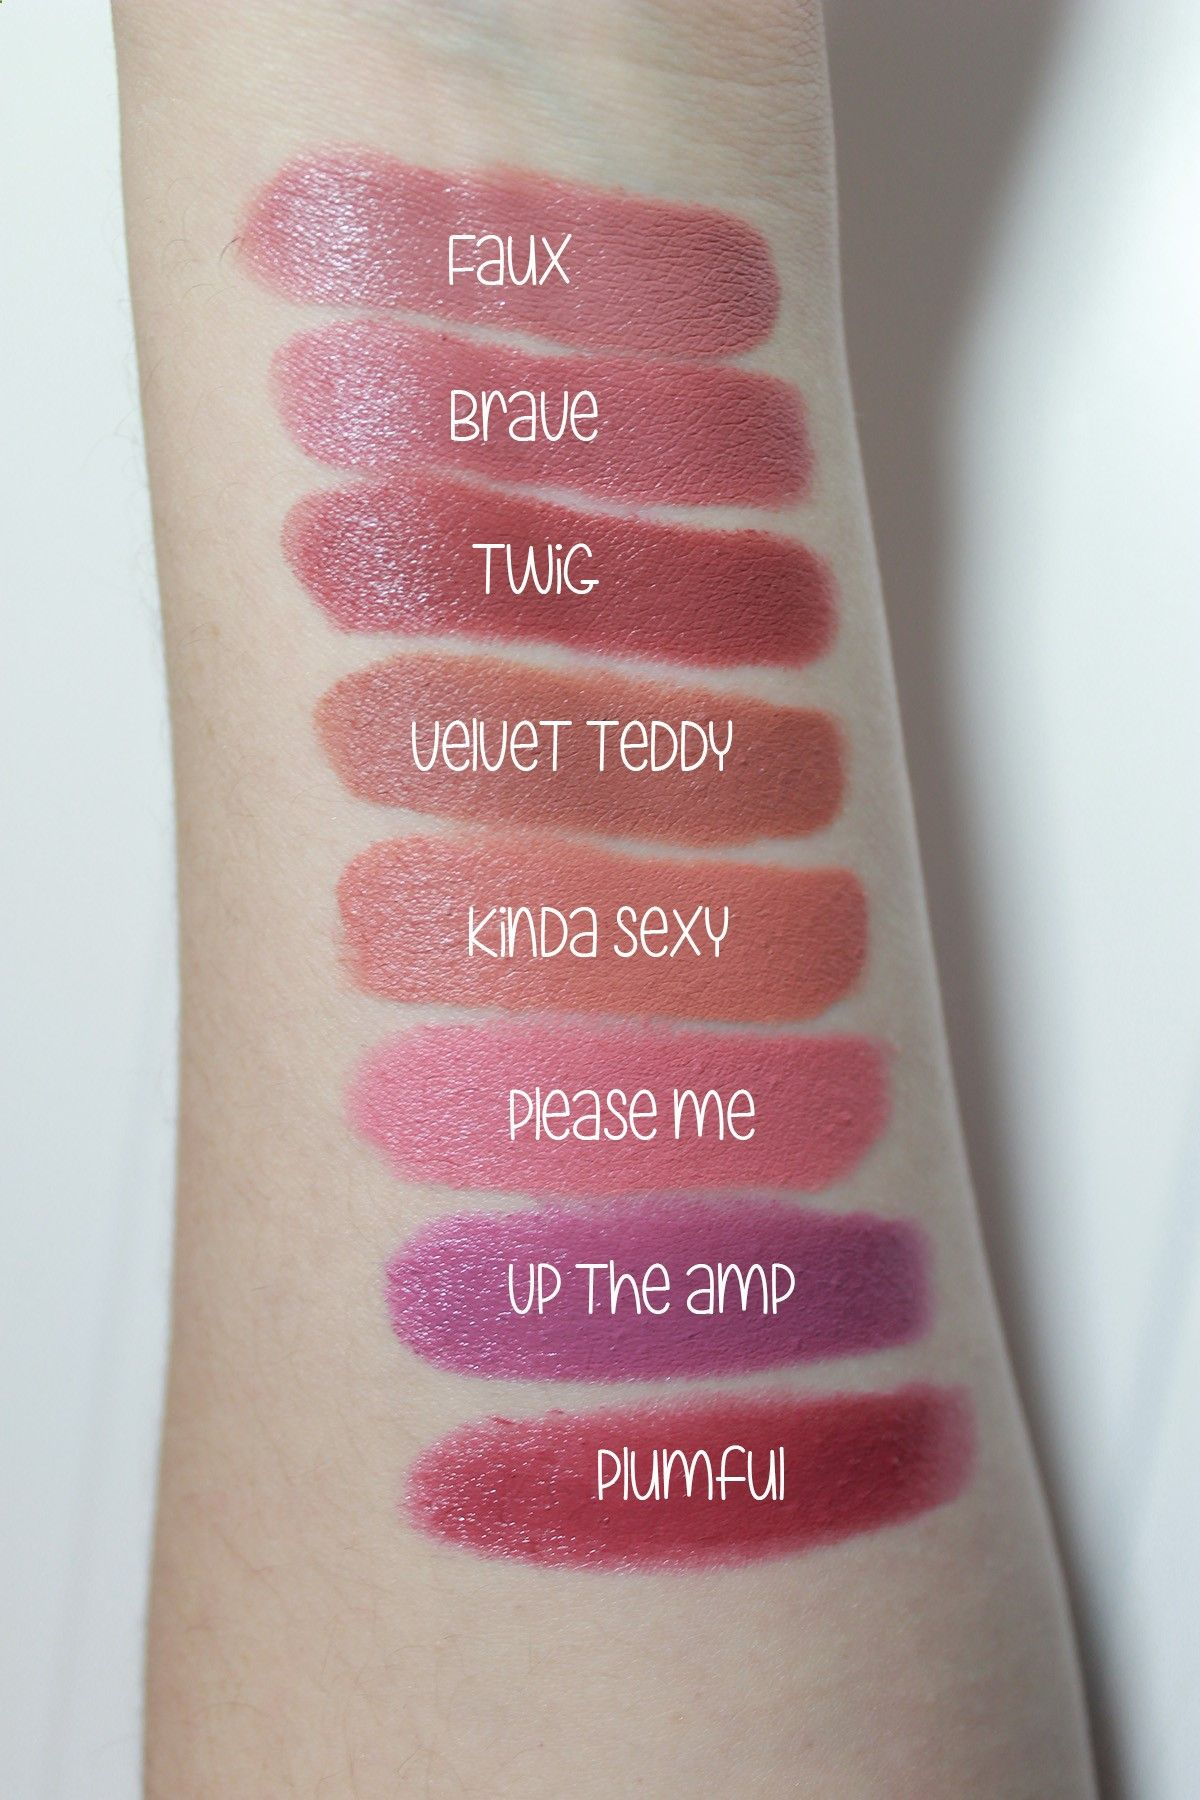 Mac Lipstick in shades : Twig and Please Me